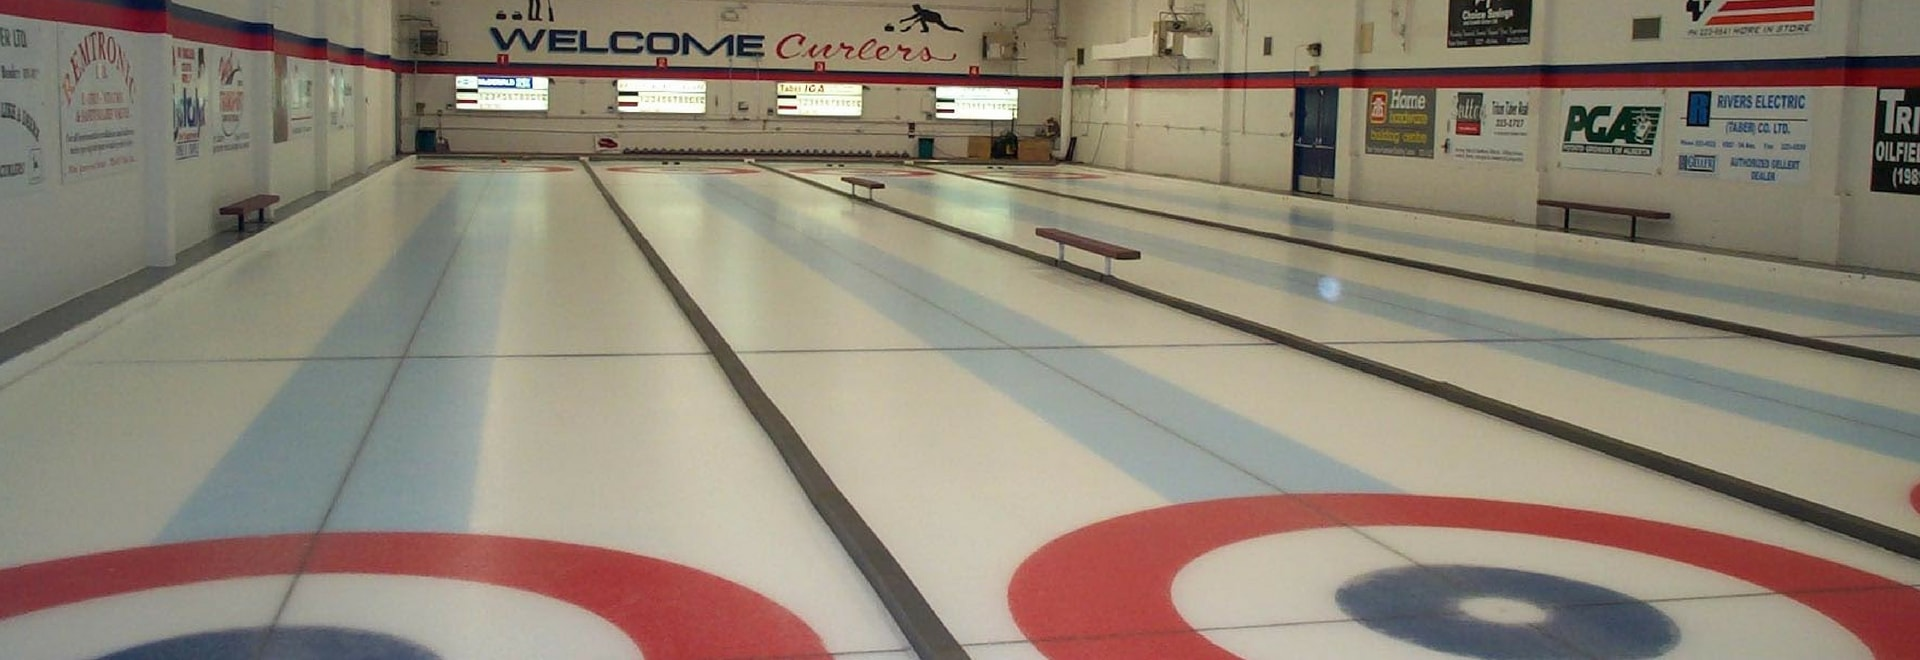 Taber to Host 62nd Annual Alberta Firefighters Curling Association Championship in 2021